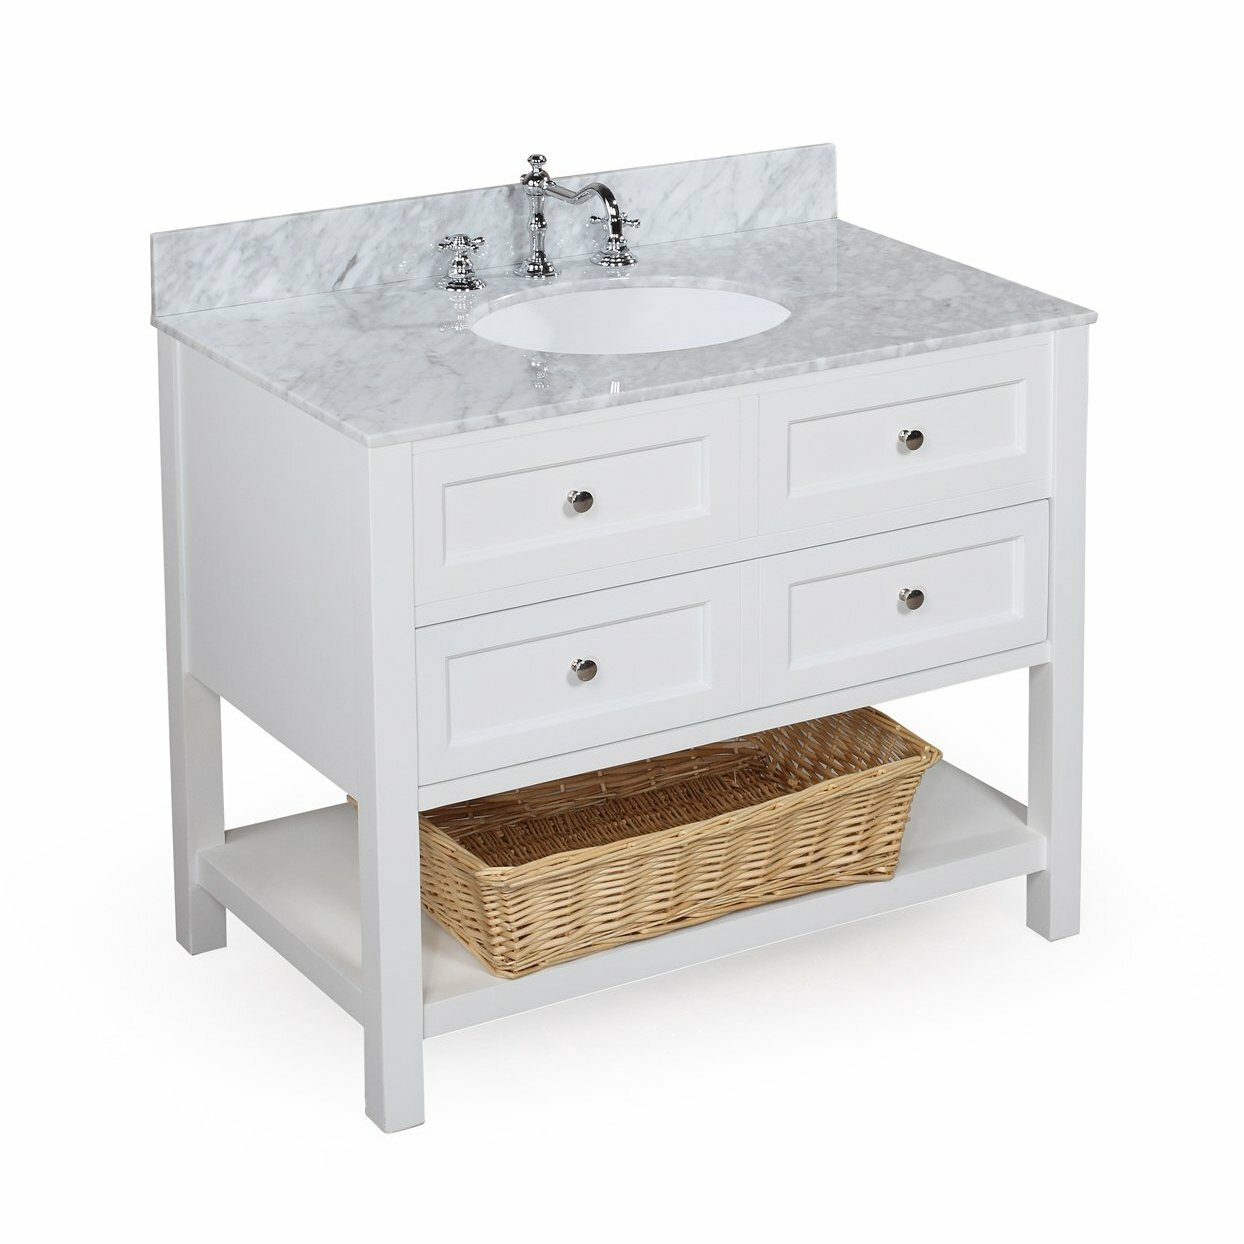 Farmhouse Bathroom Sink Vanity | Potterybarn Bathrooms | Pottery Barn Vanity